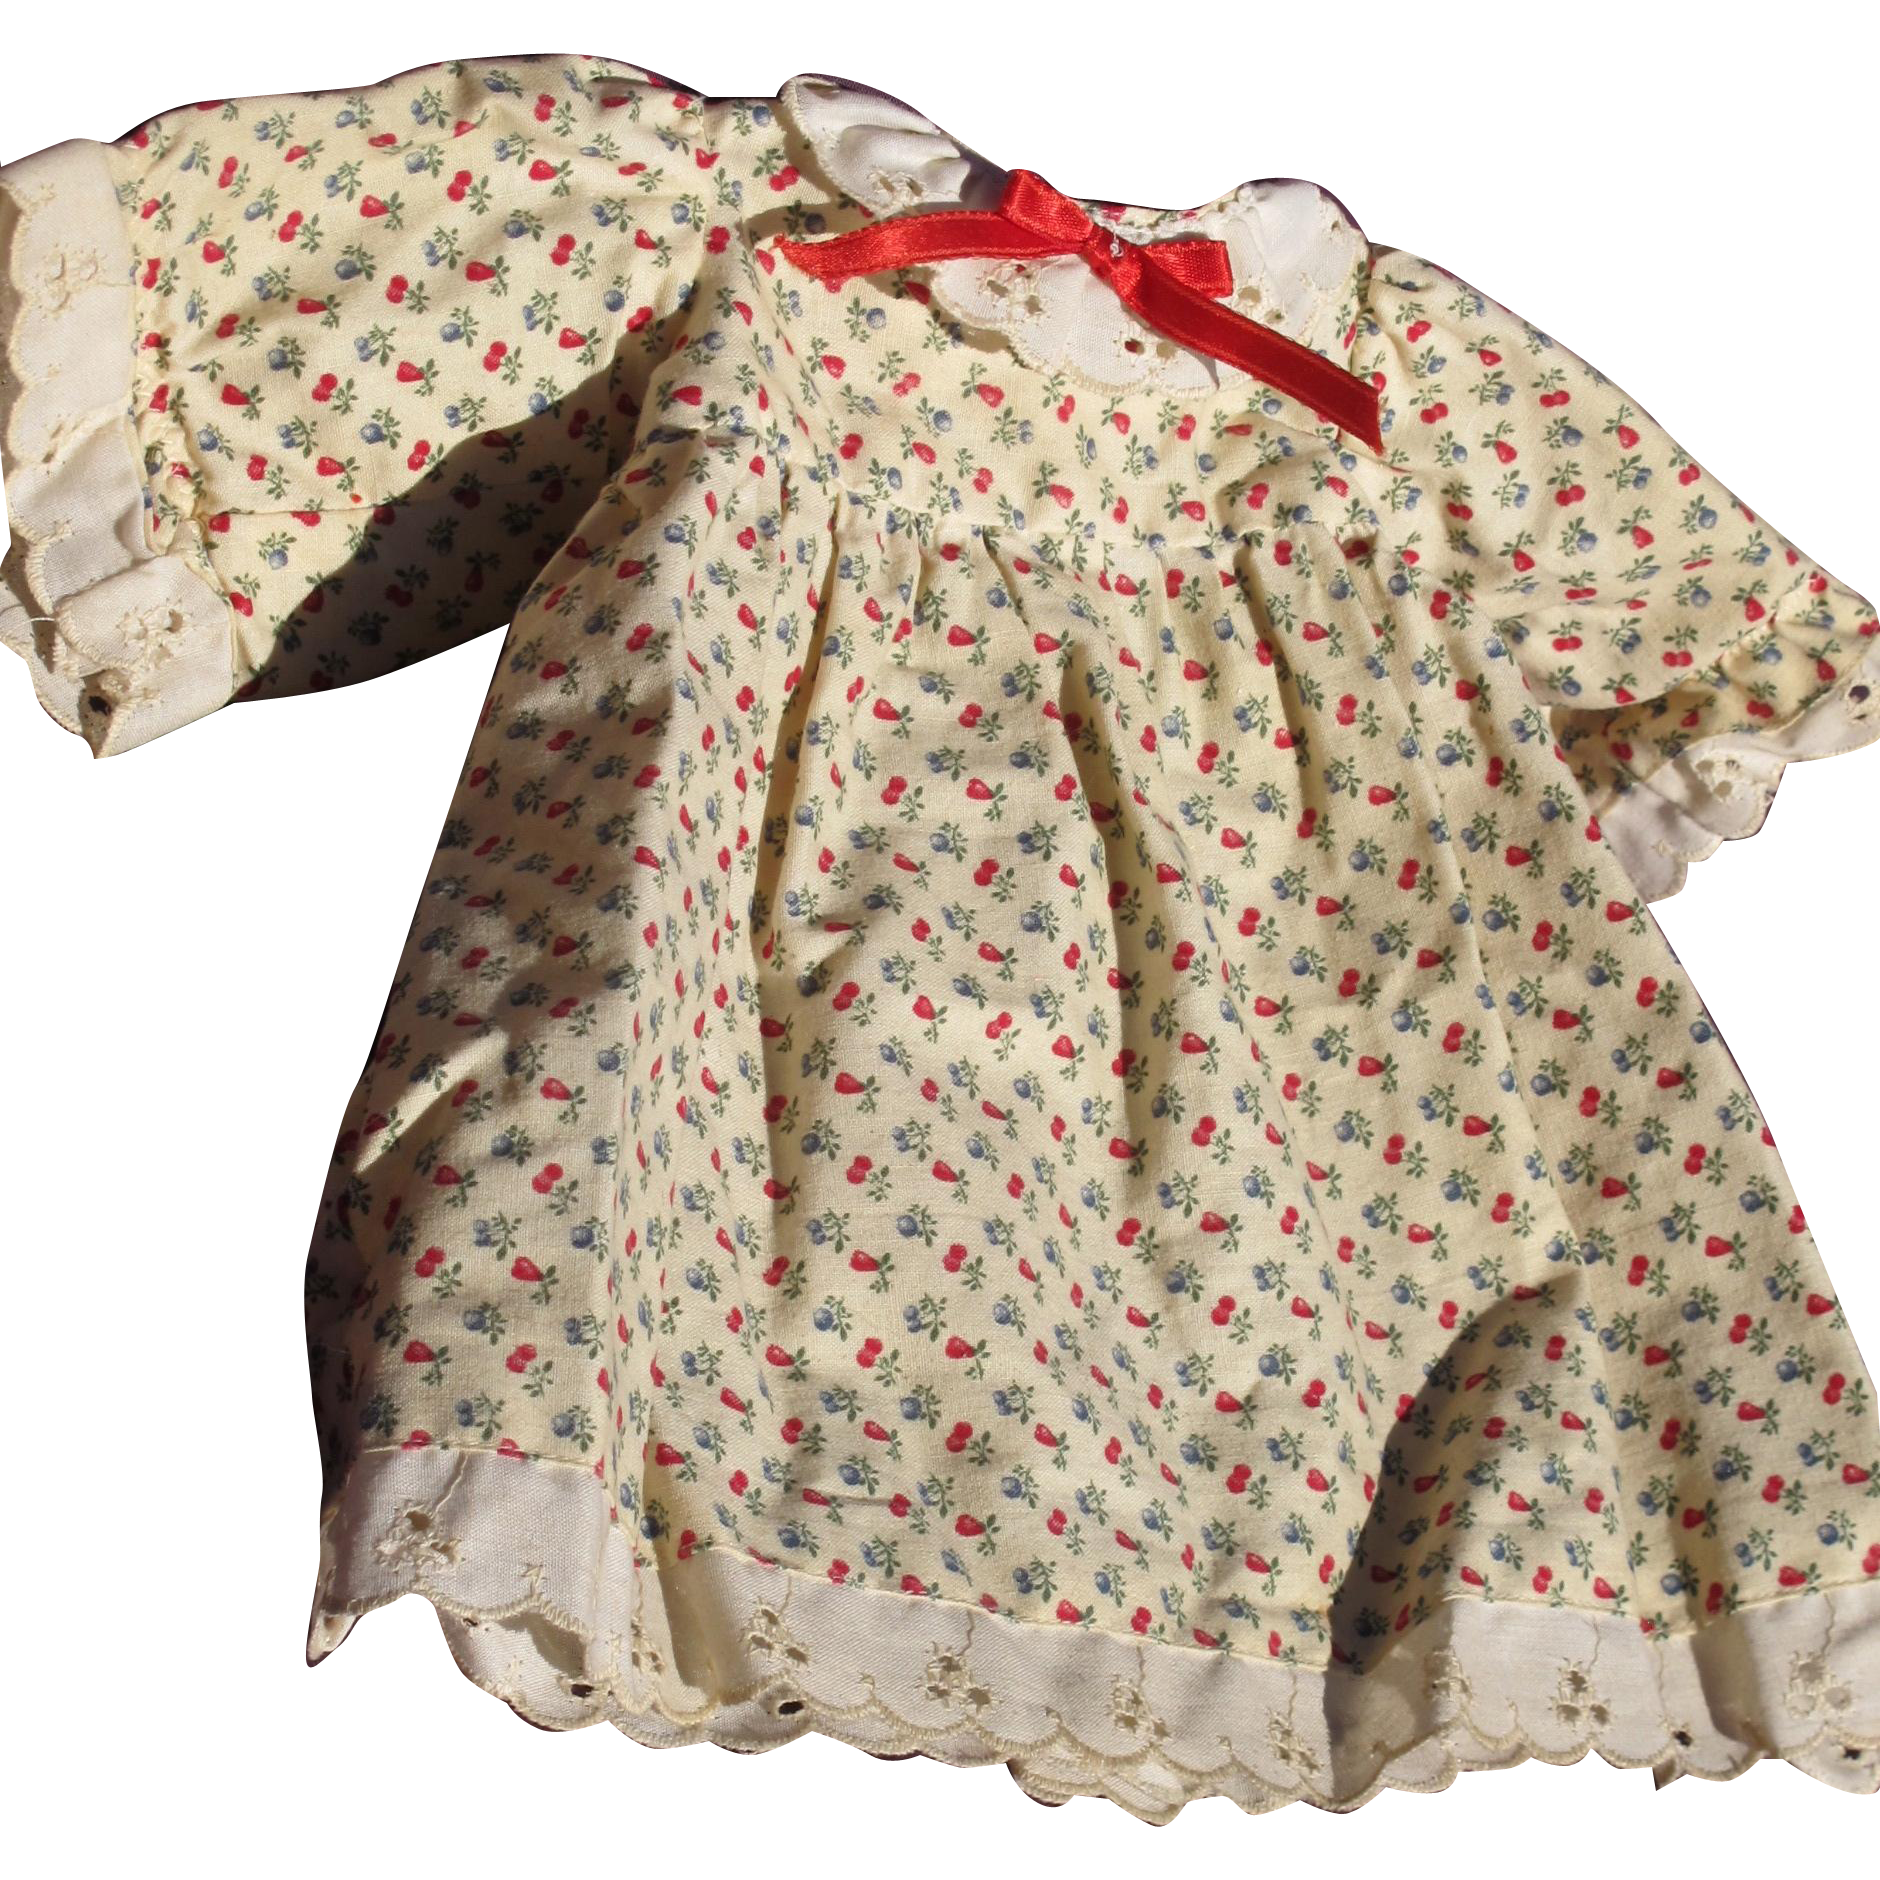 Vintage Doll Dress with Cherries and Eyelet Lace